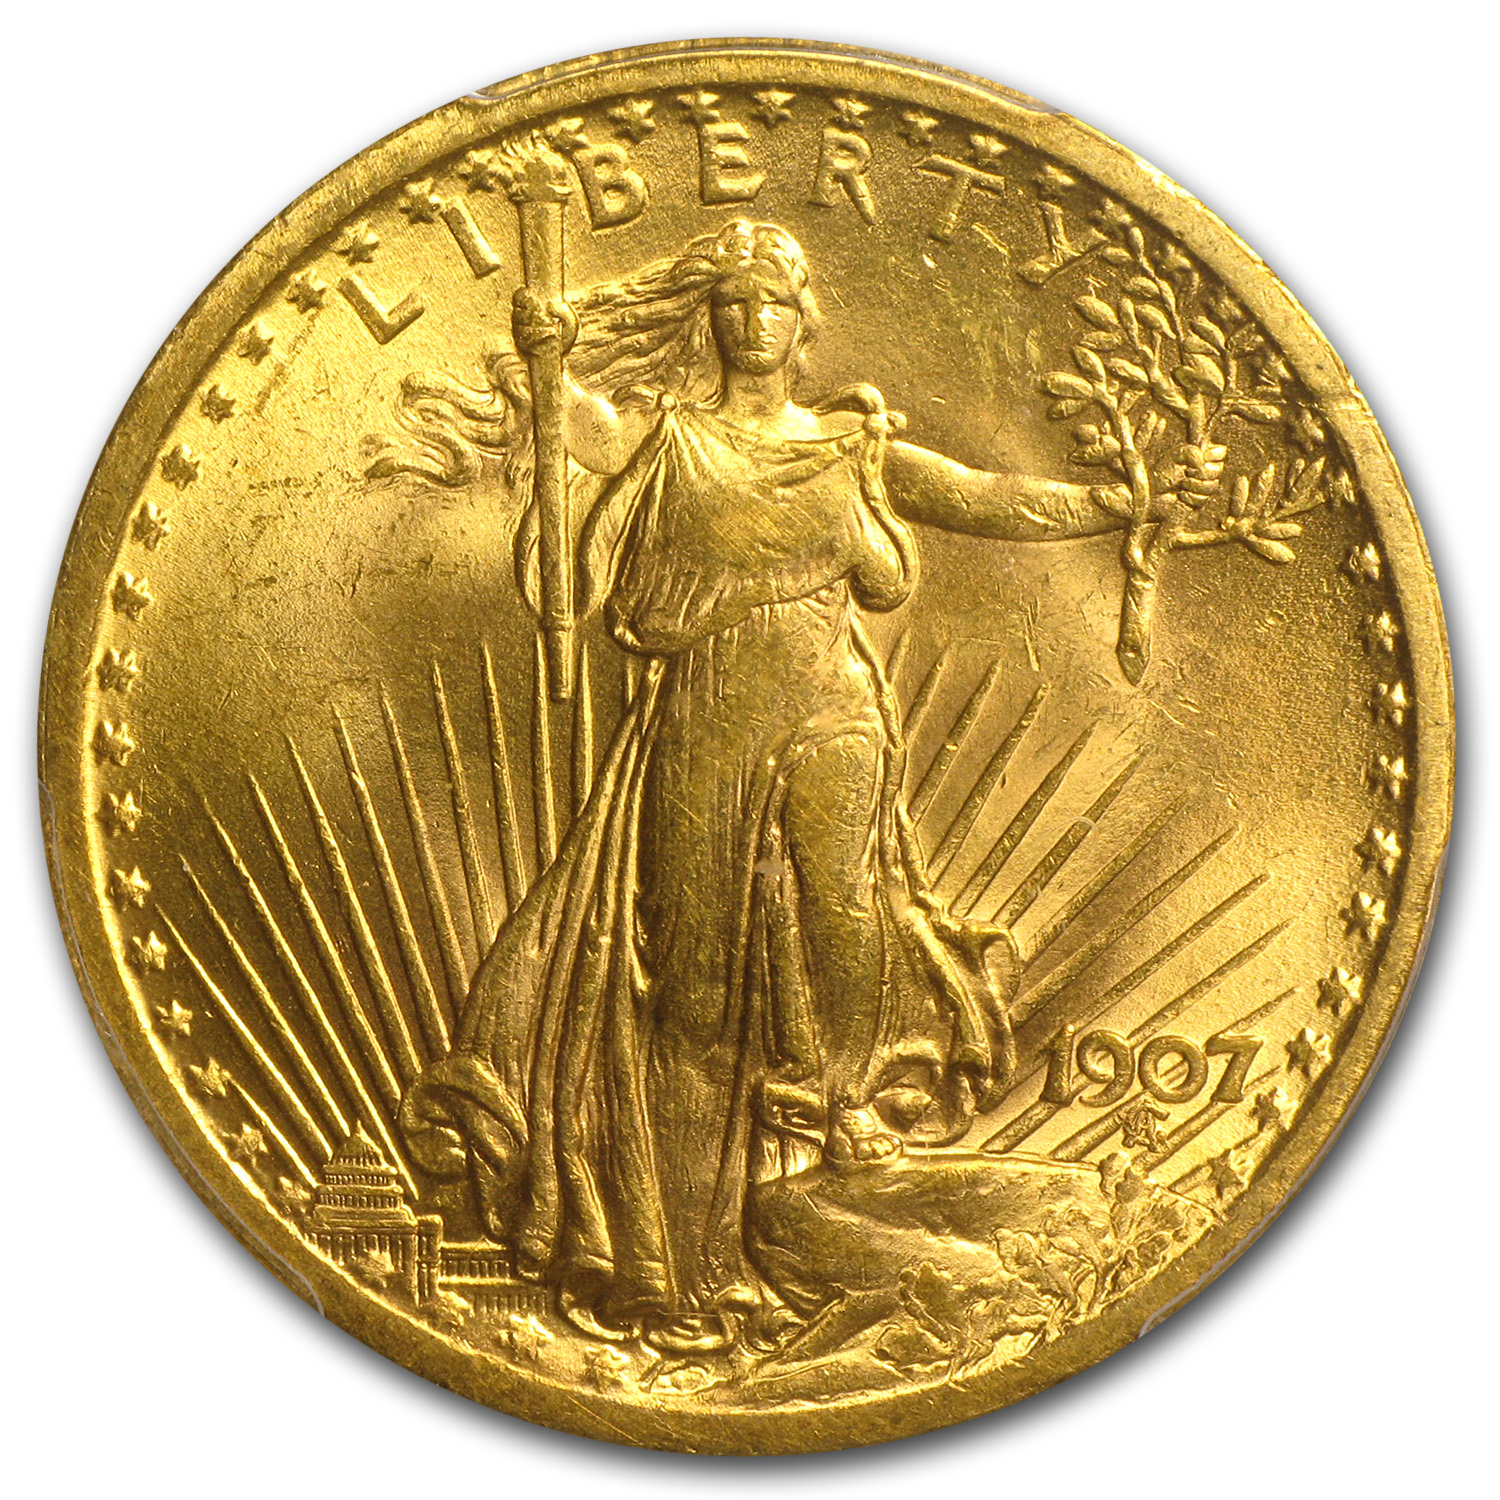 1907 $20 St. Gaudens Gold Double Eagle - MS-63 PCGS